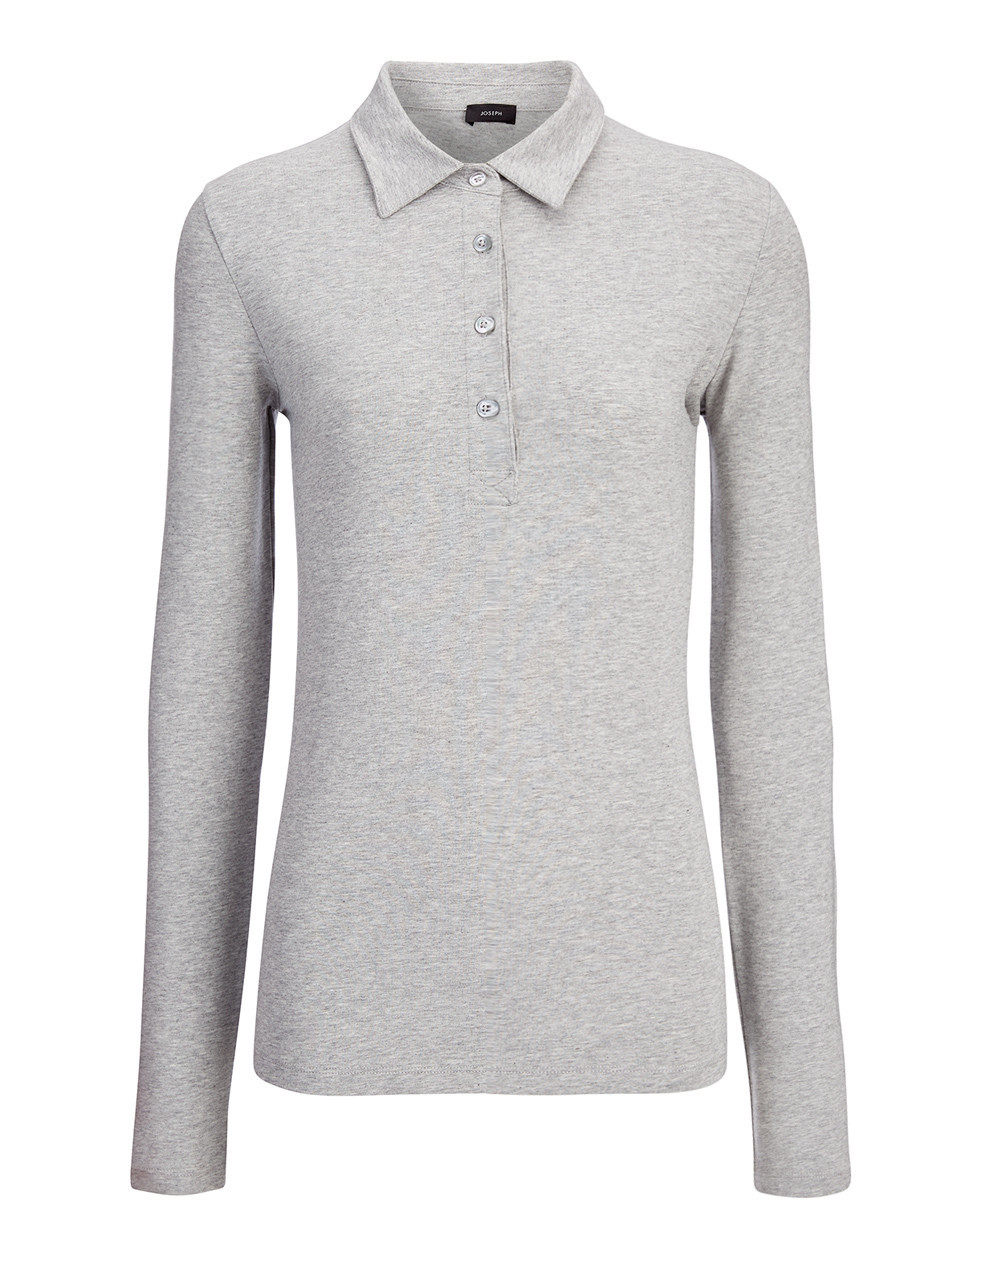 Cotton Lyocell Stretch Polo In Marble - neckline: shirt collar/peter pan/zip with opening; pattern: plain; style: polo shirt; predominant colour: mid grey; occasions: casual; length: standard; fibres: cotton - stretch; fit: body skimming; sleeve length: long sleeve; sleeve style: standard; pattern type: fabric; texture group: jersey - stretchy/drapey; season: s/s 2016; wardrobe: basic